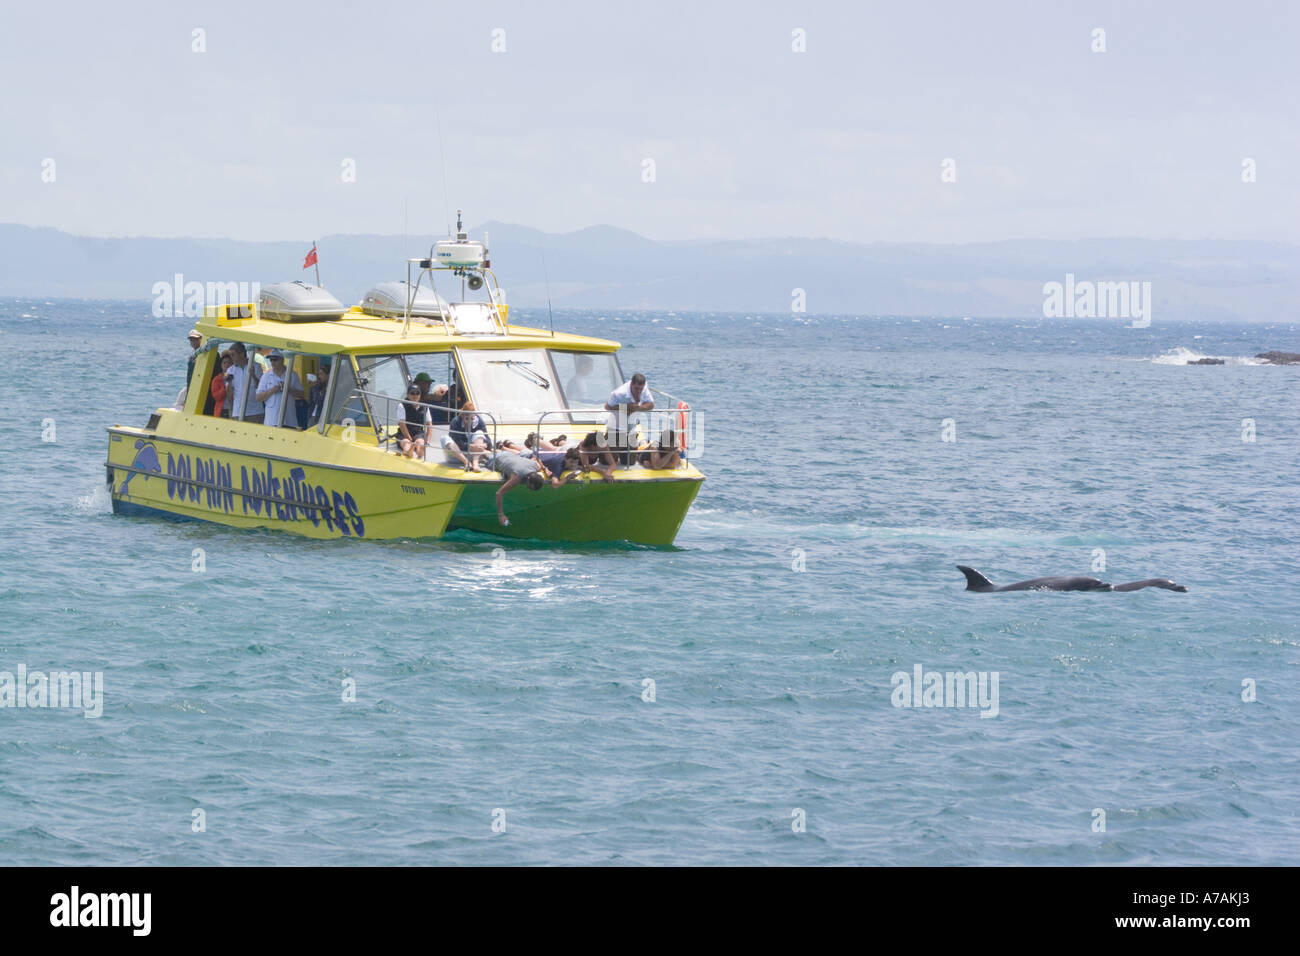 Paihia Bay of Islands New Zealand Bottle Nosed Dolphin watching excursion trip with yellow tourist boat - Stock Image